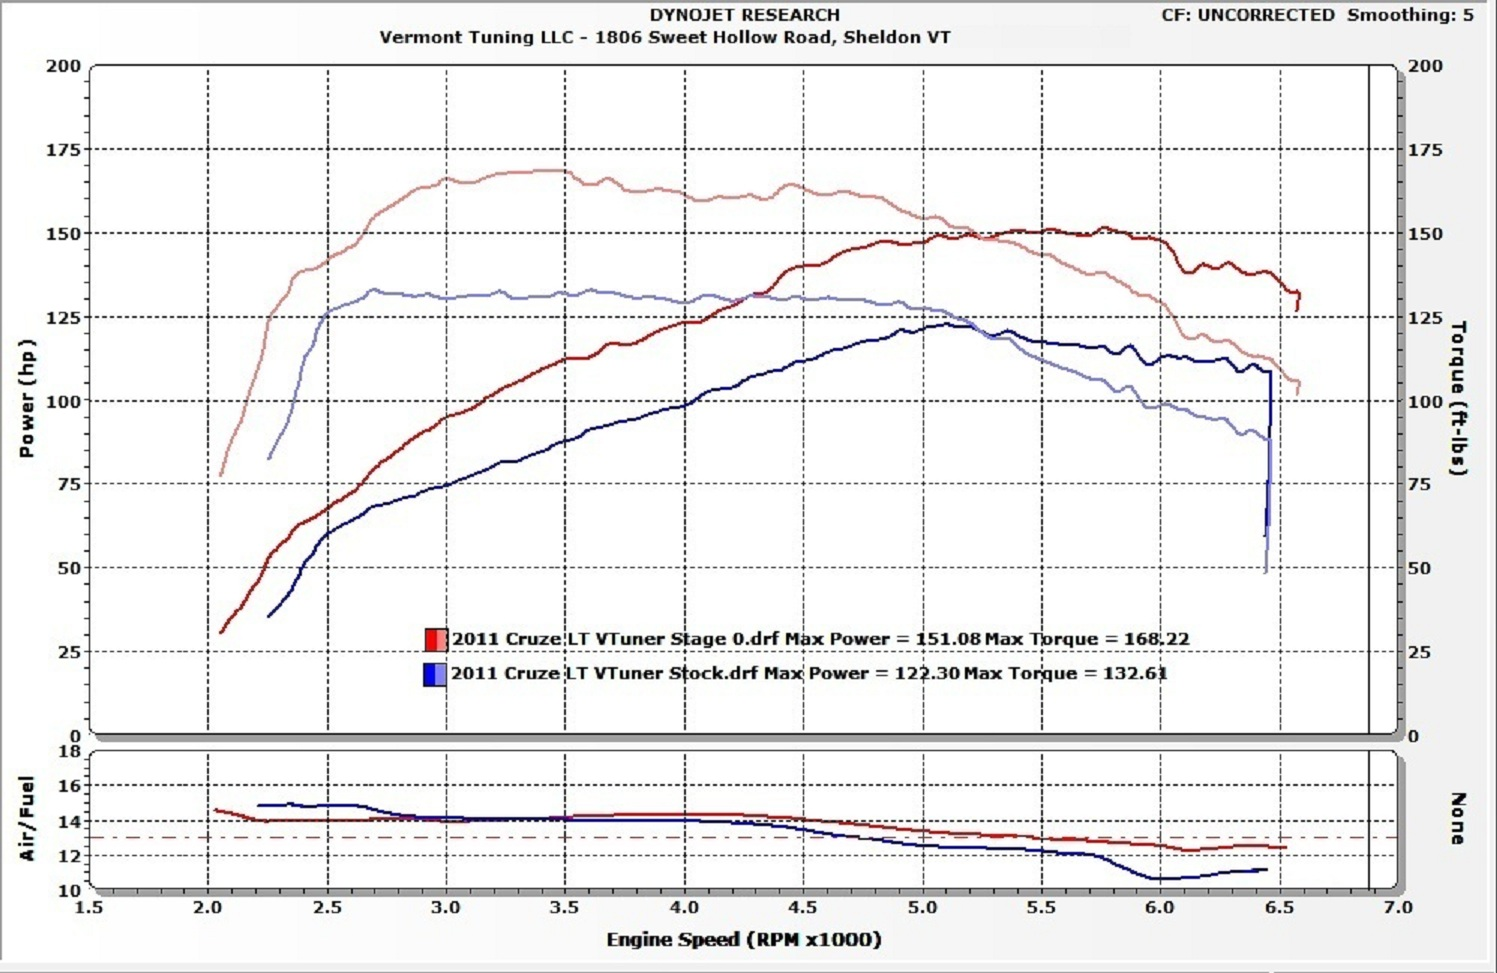 Chevrolet Cruze Dyno Graph Results